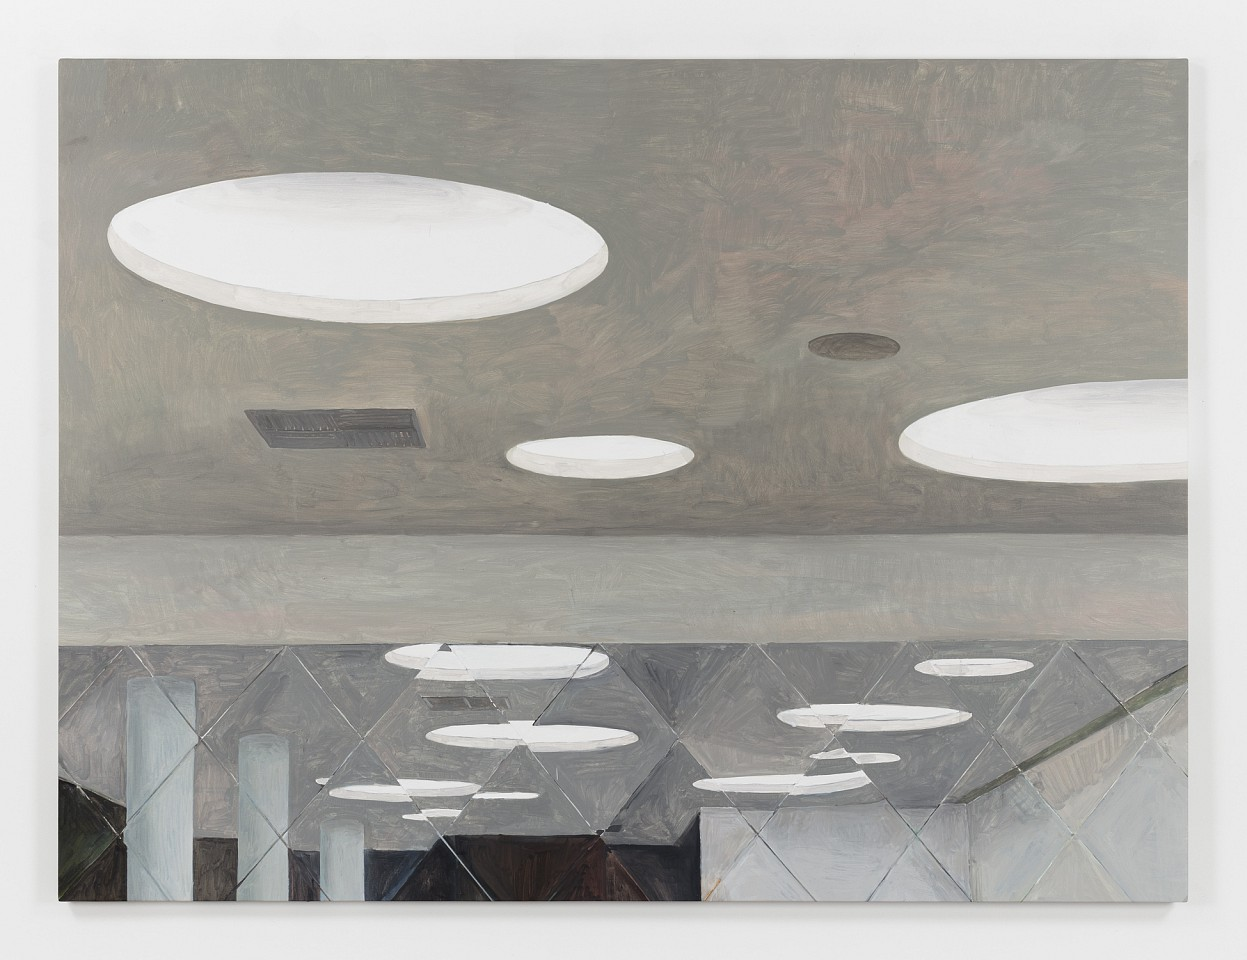 Jorge Macchi ,   False Ceiling  ,  2016     oil on canvas     59 x 78 3/4 in/150 x 200 cm     JOM-16-PA-012